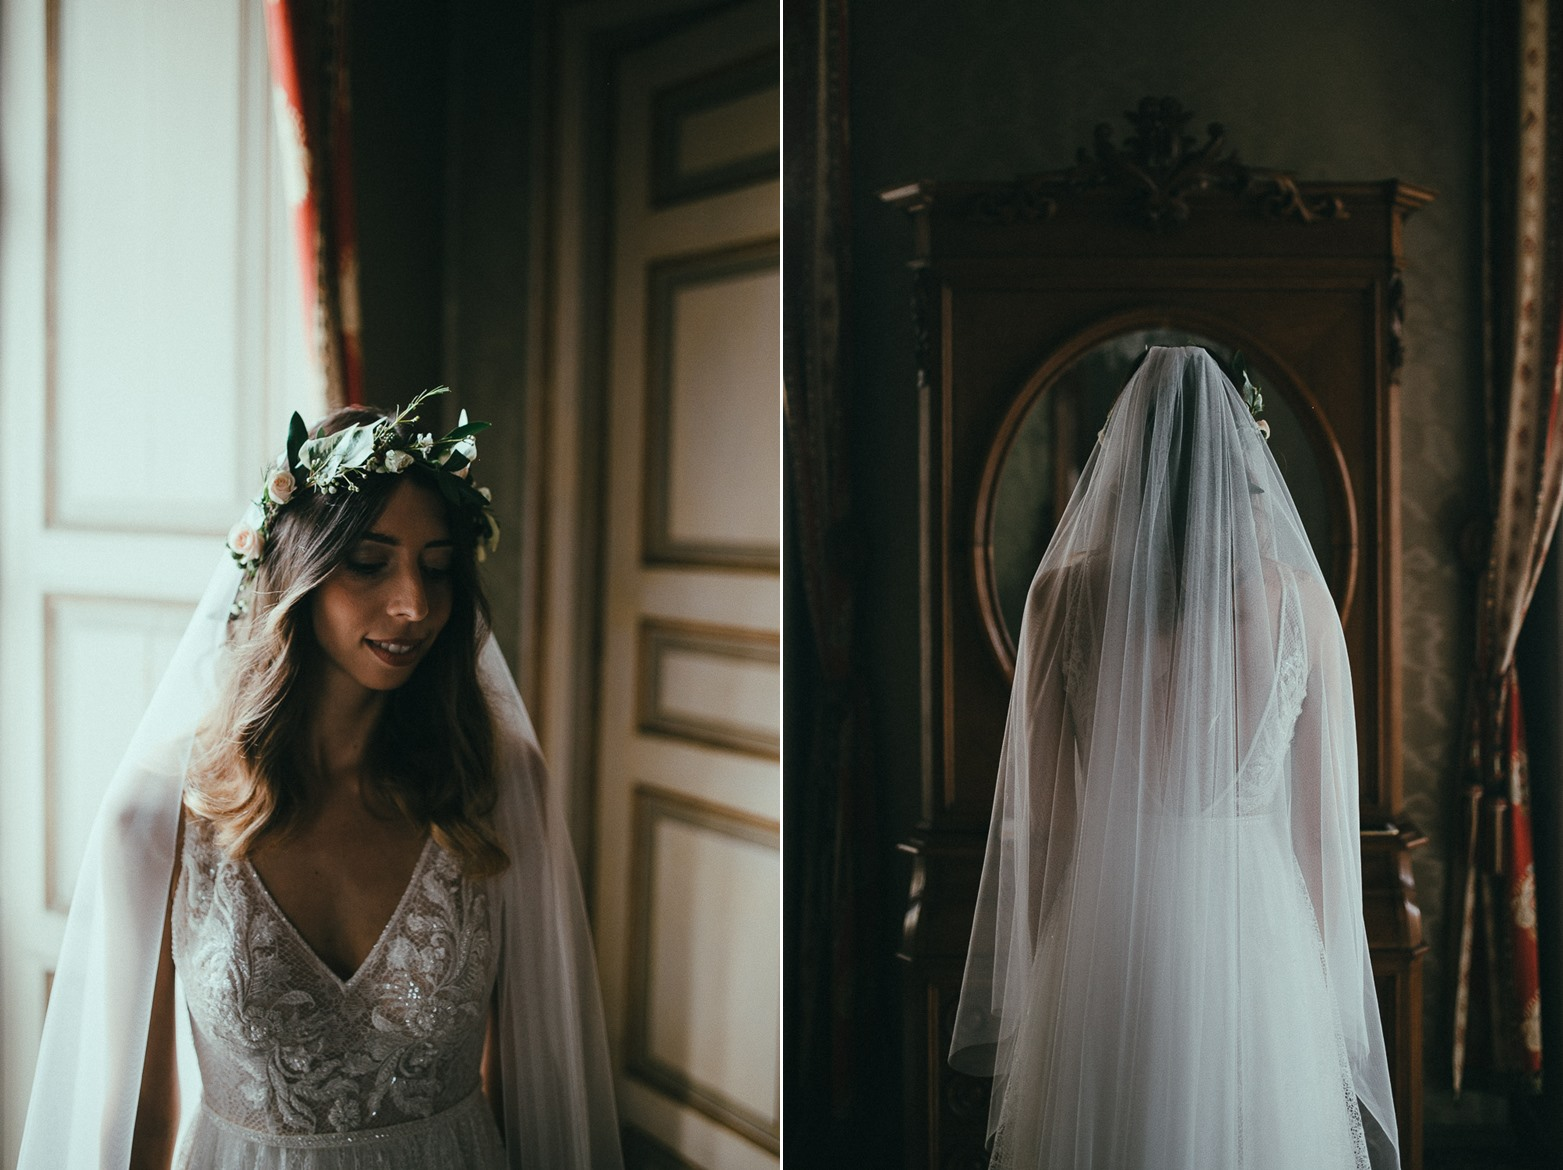 42-bride-portrait.jpg